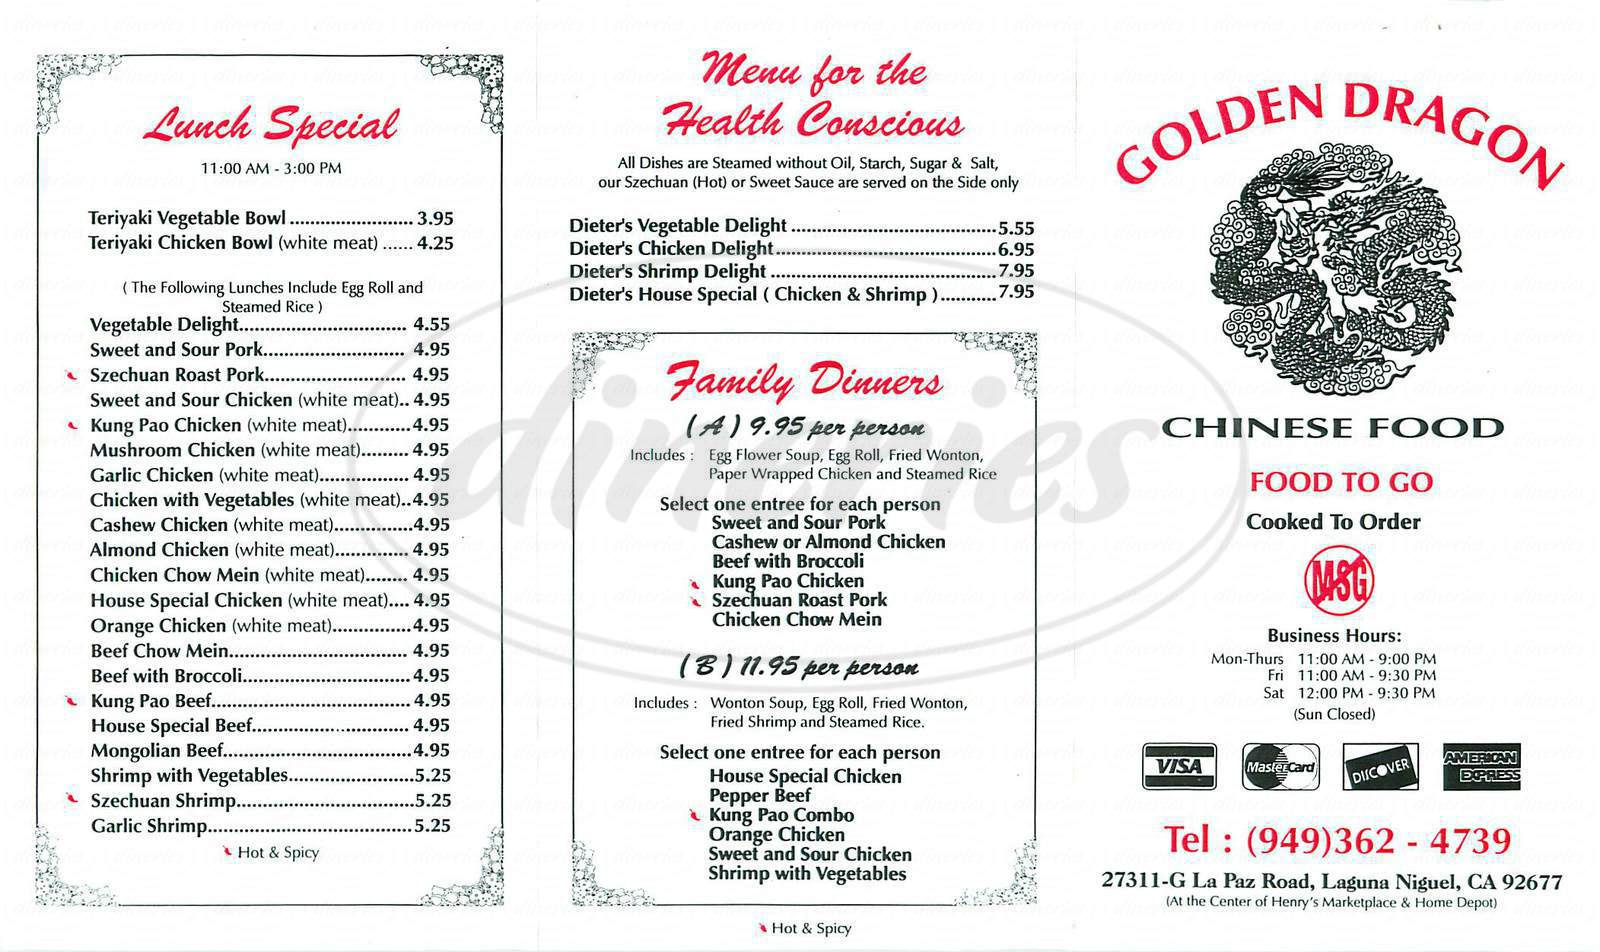 menu for Golden Dragon Chinese Food